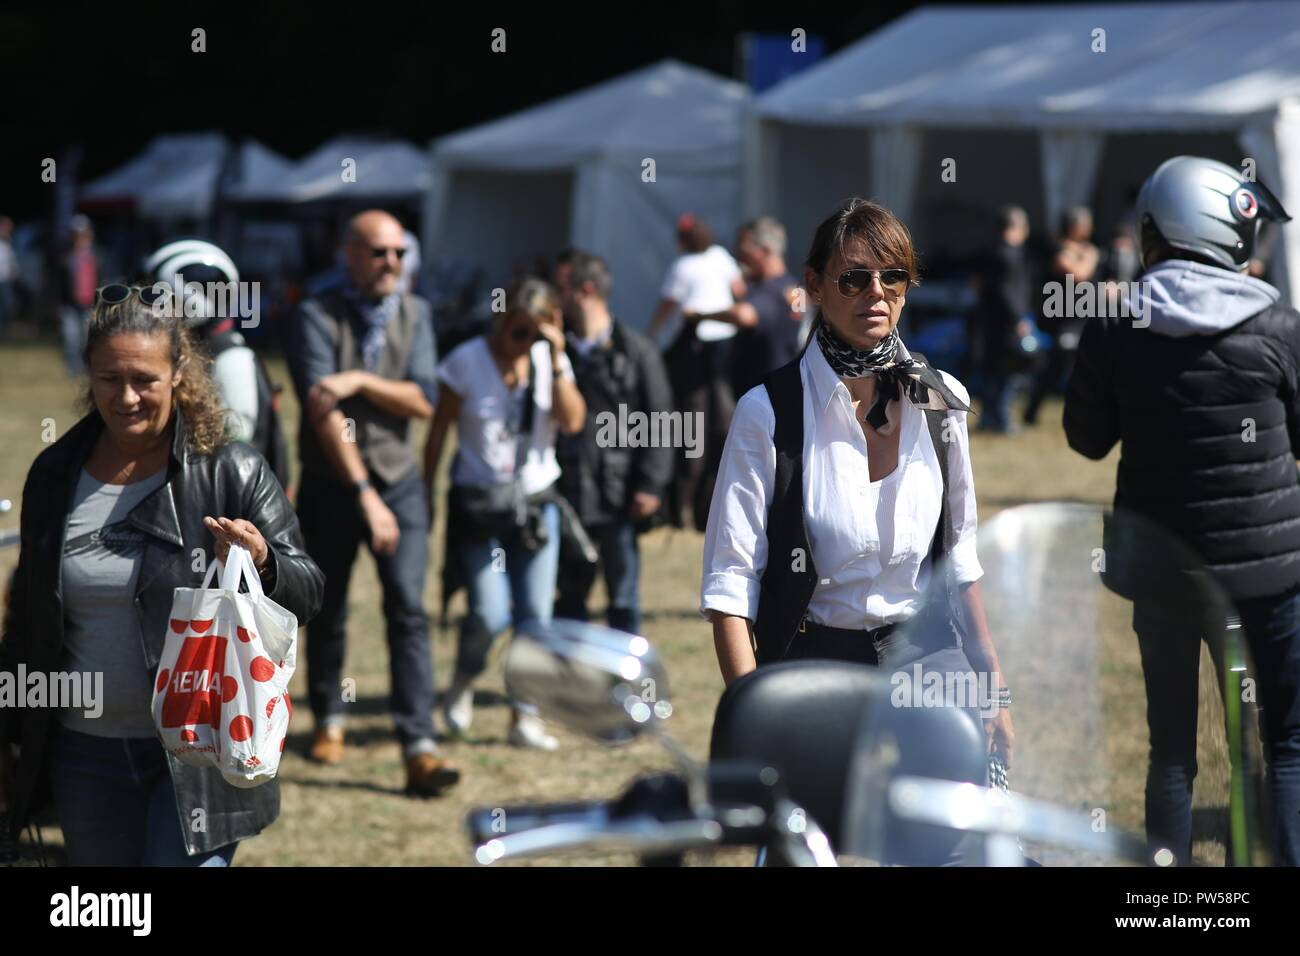 Female Bikers arriving at Château de Neuville in Gambais (78) – France. - Stock Image